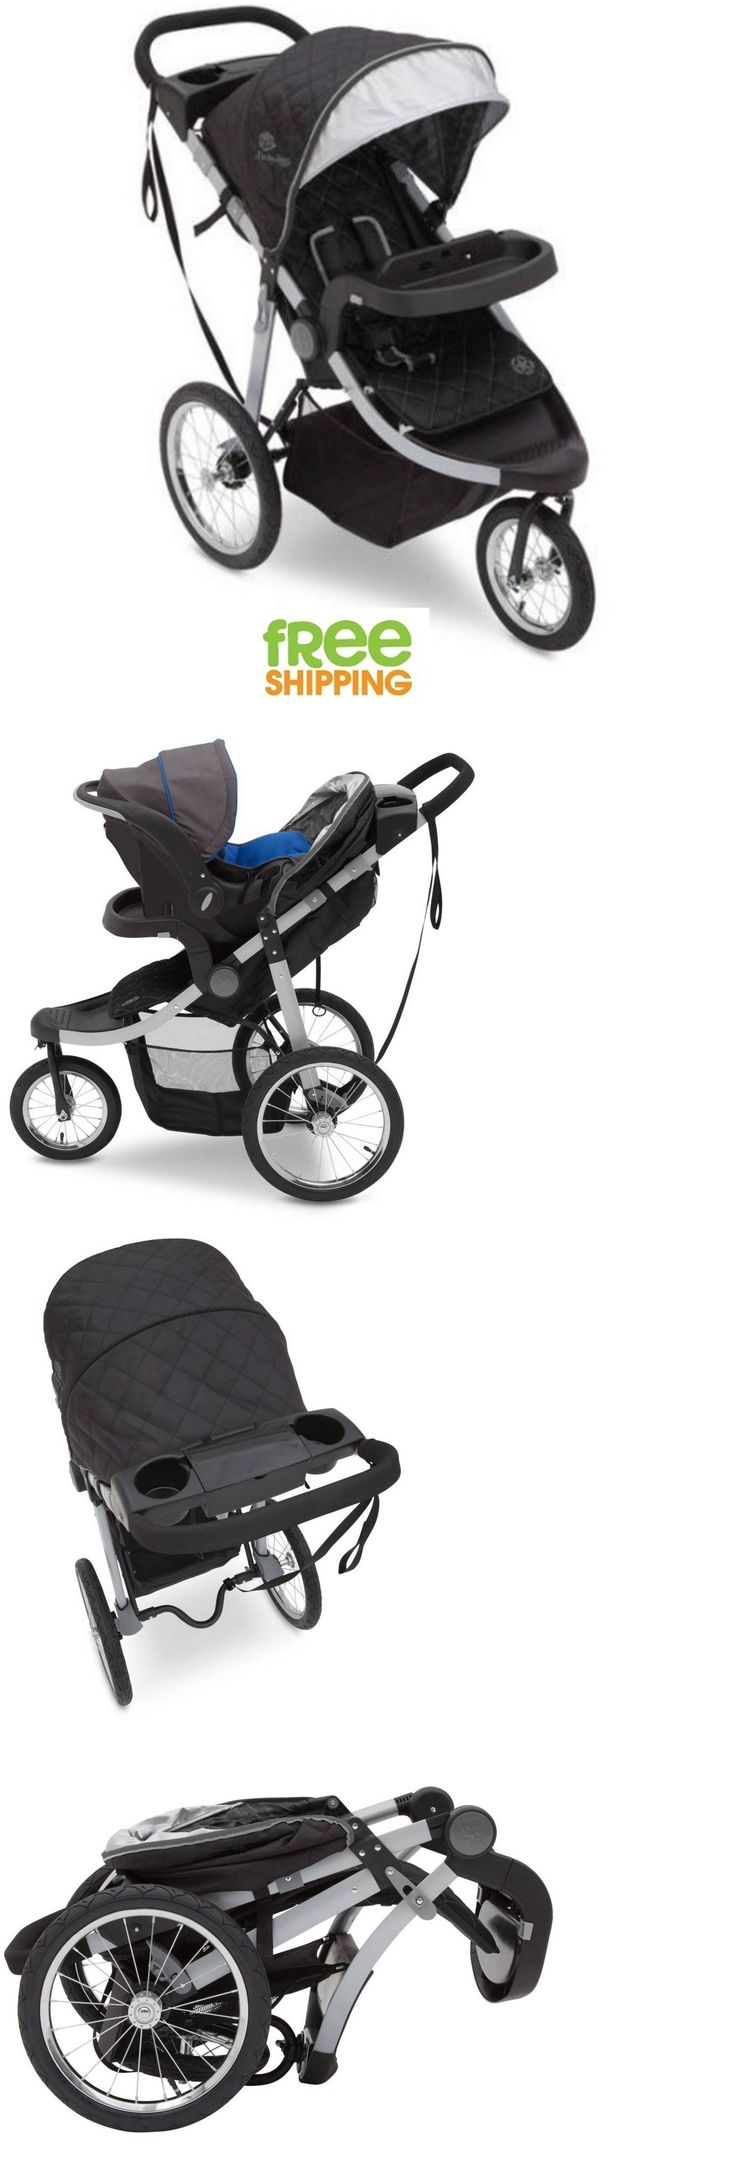 Baby: 3 Wheel Jogging Stroller Folding Baby Carriage Kids Child Pram Gray New! BUY IT NOW ONLY: $117.74